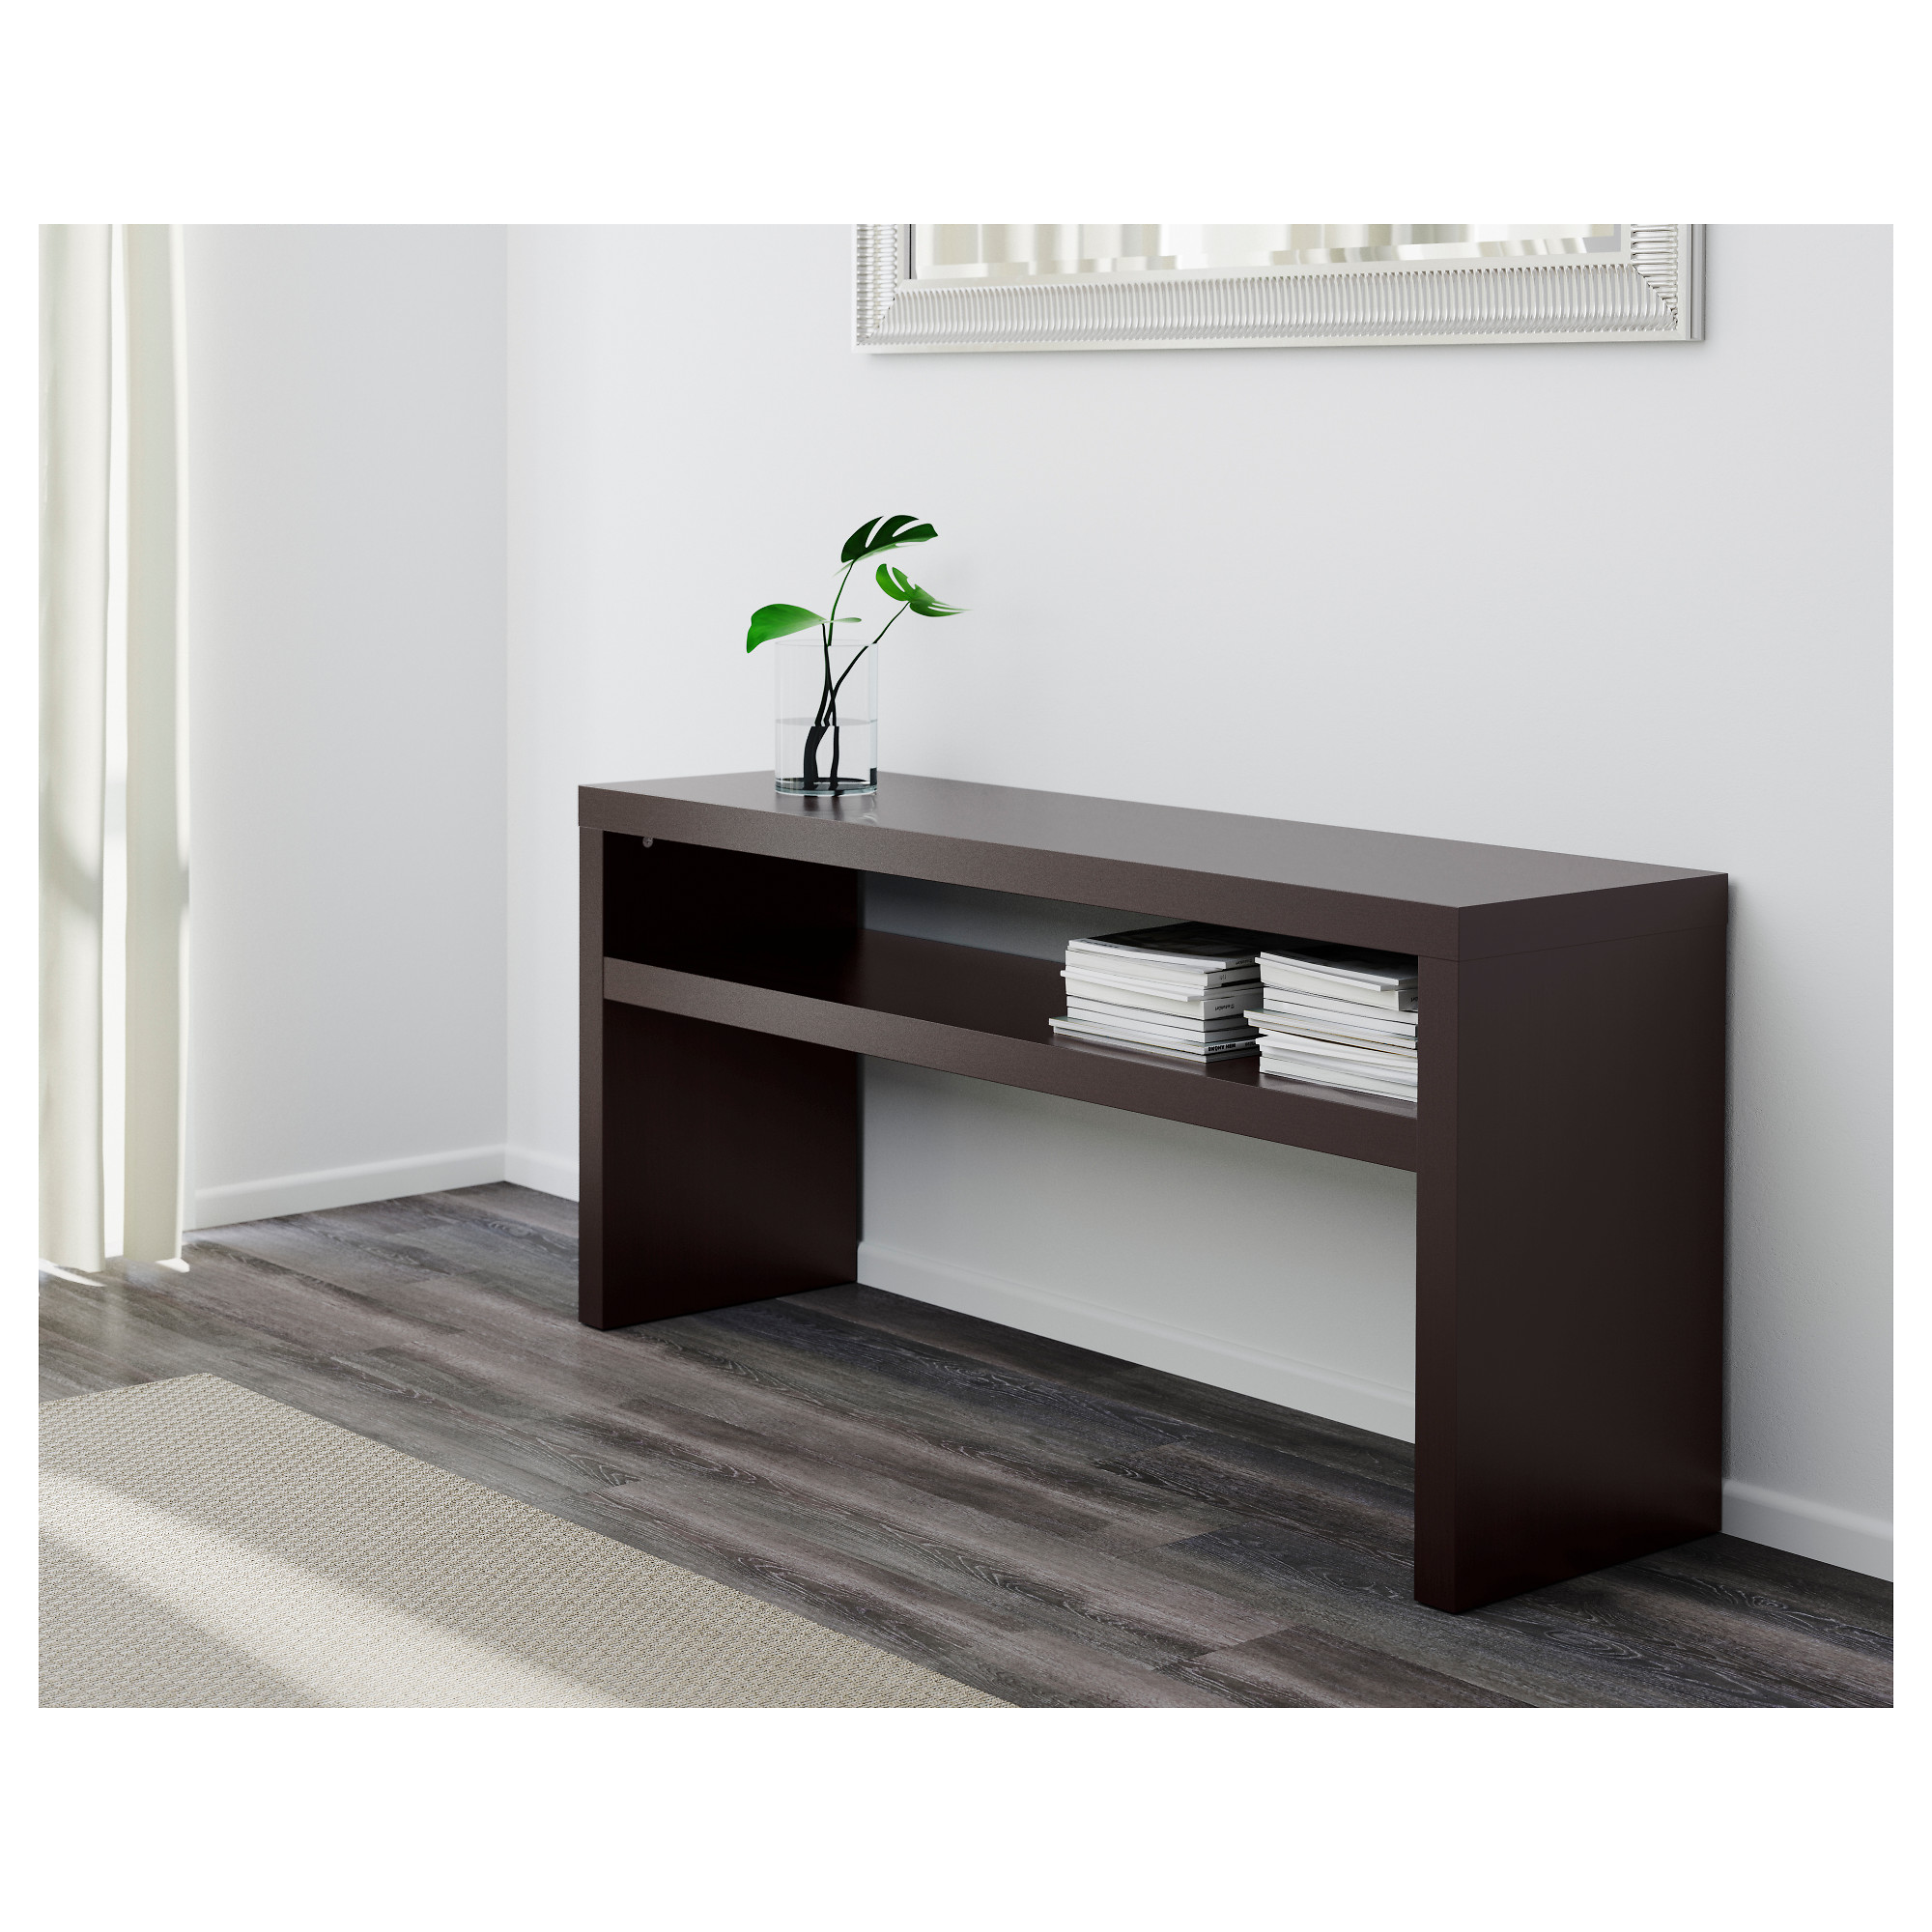 lack sofa table white console tables use hemnes sofa table as media center below wall thesofa. Black Bedroom Furniture Sets. Home Design Ideas